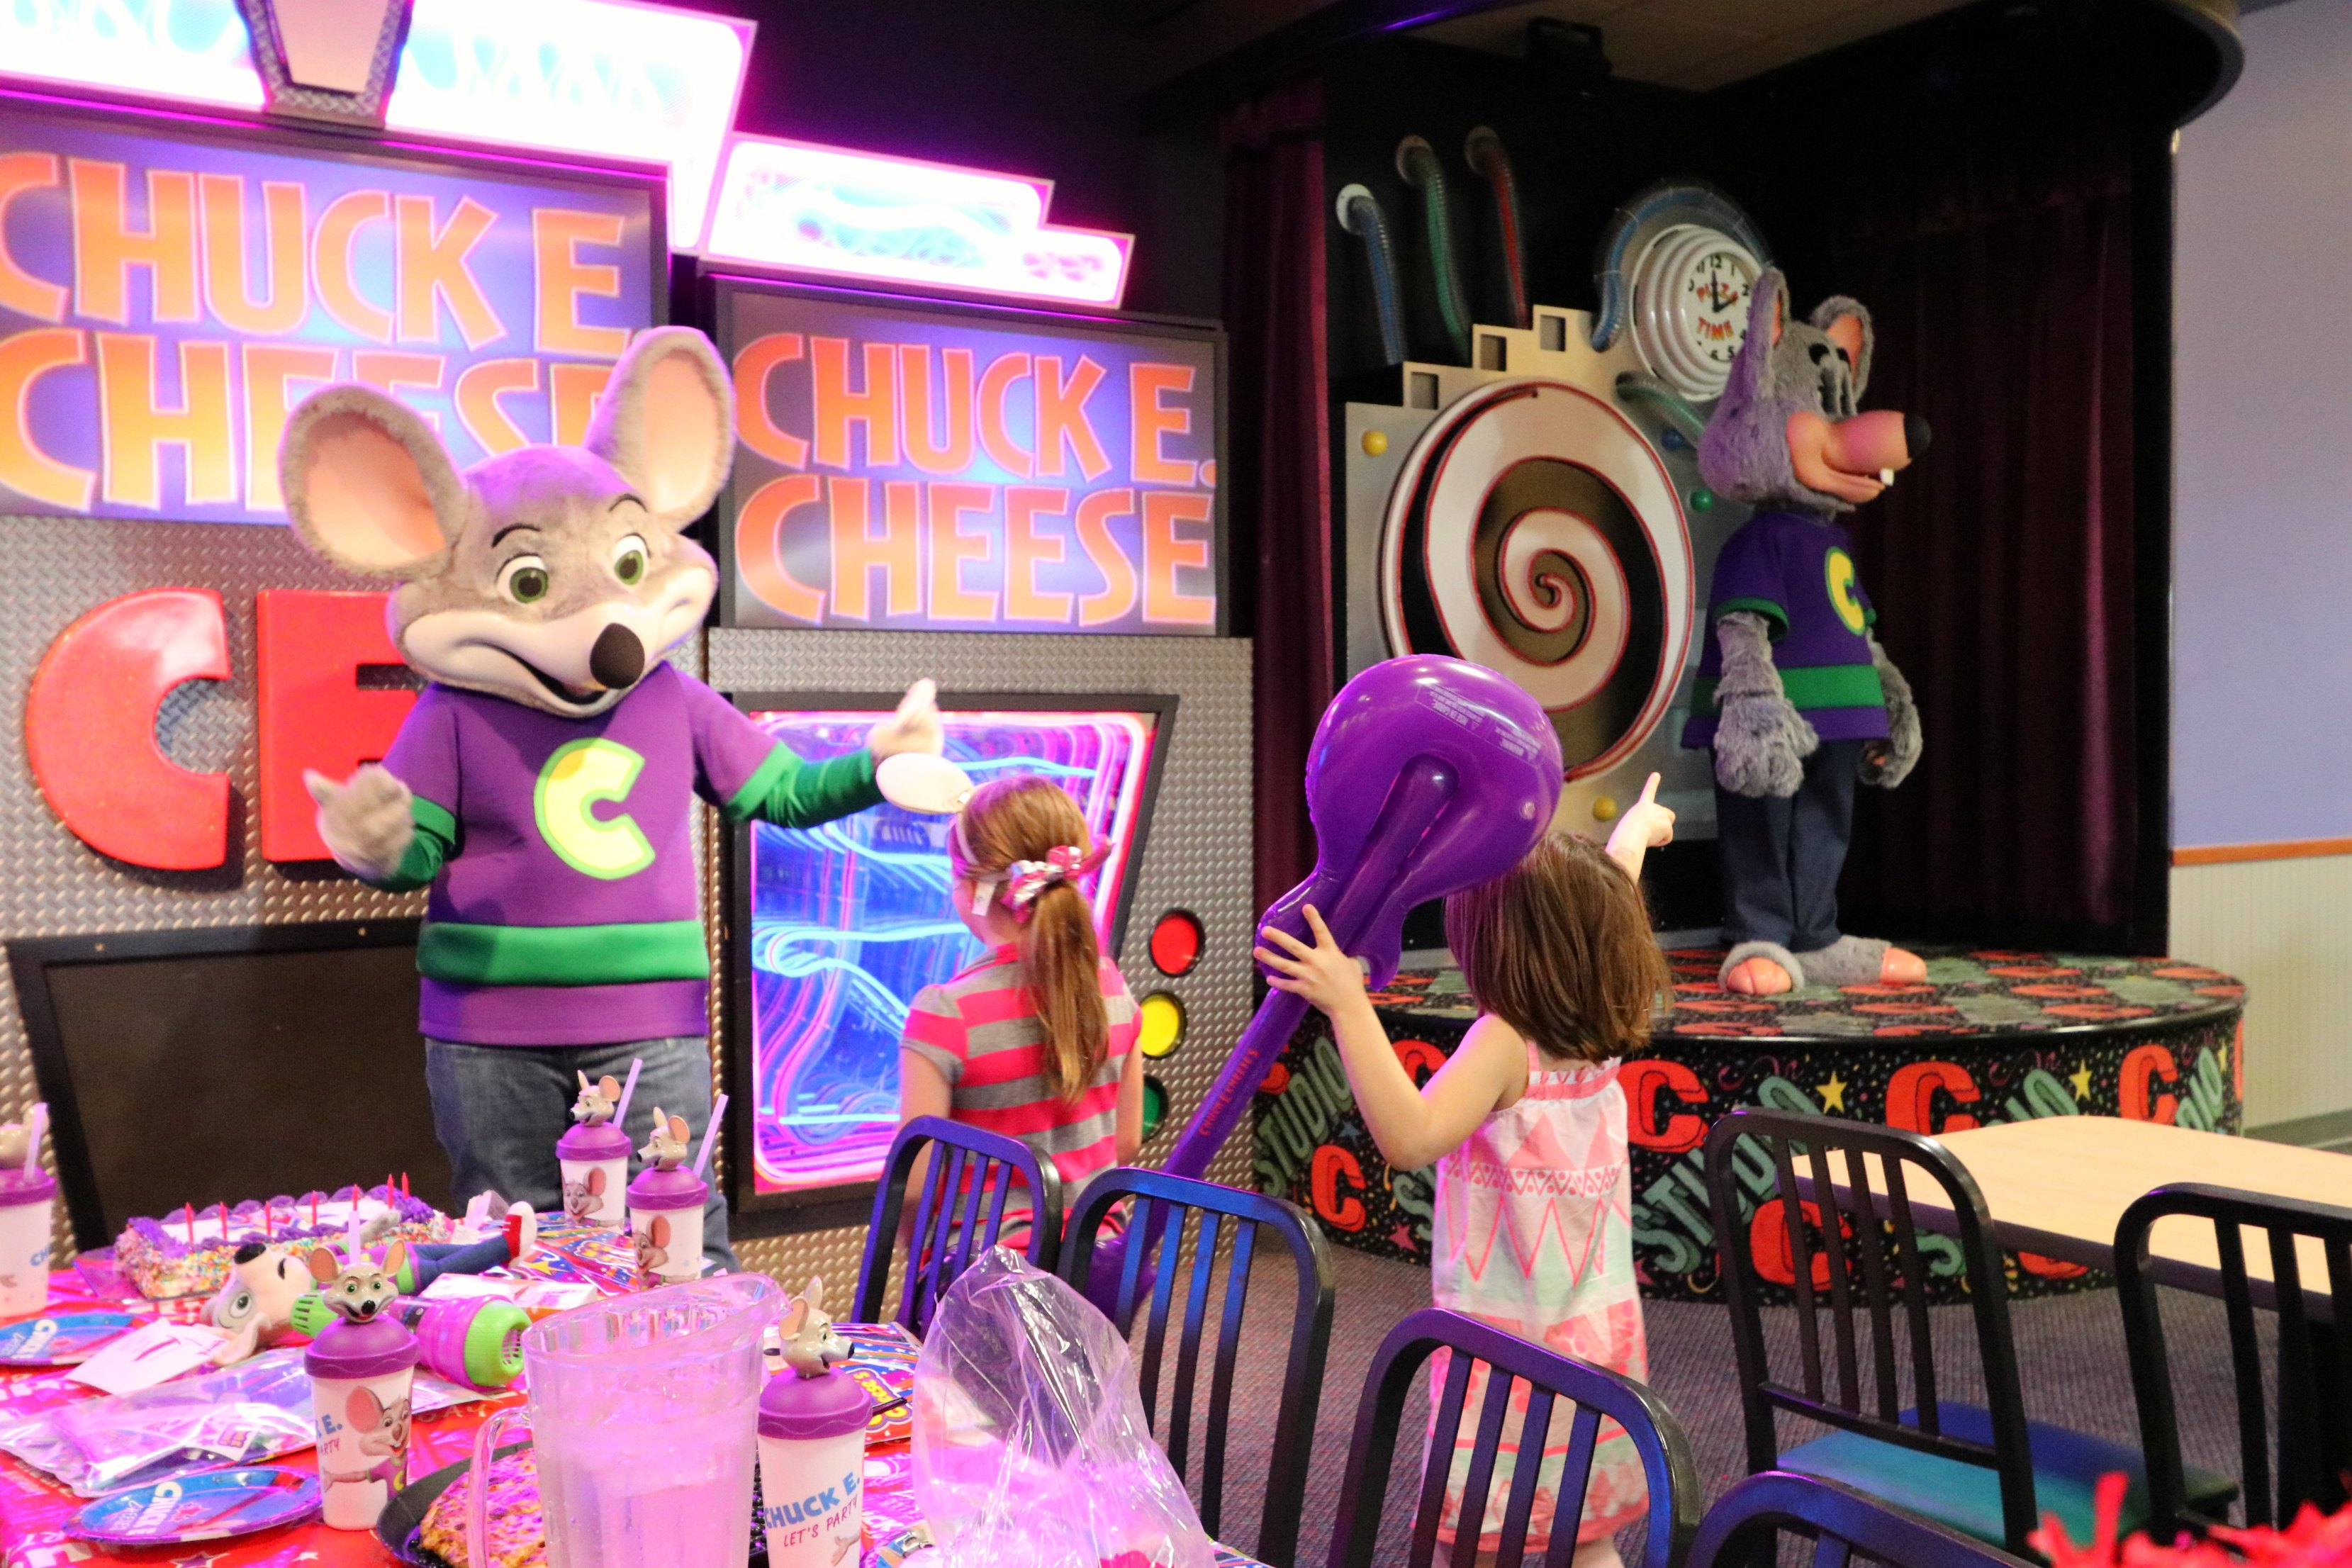 Chuck E. Cheese's (formerly Chuck E. Cheese's Pizza Time Theatre, and Chuck E. Cheese's Pizza) is a chain of American family entertainment centers and restaurants. The chain is the primary brand of CEC Entertainment, Inc. and is headquartered in Irving, Texas. The establishment serves pizza and other menu items, complemented by arcade games, amusement rides, and animatronic displays as a focus.